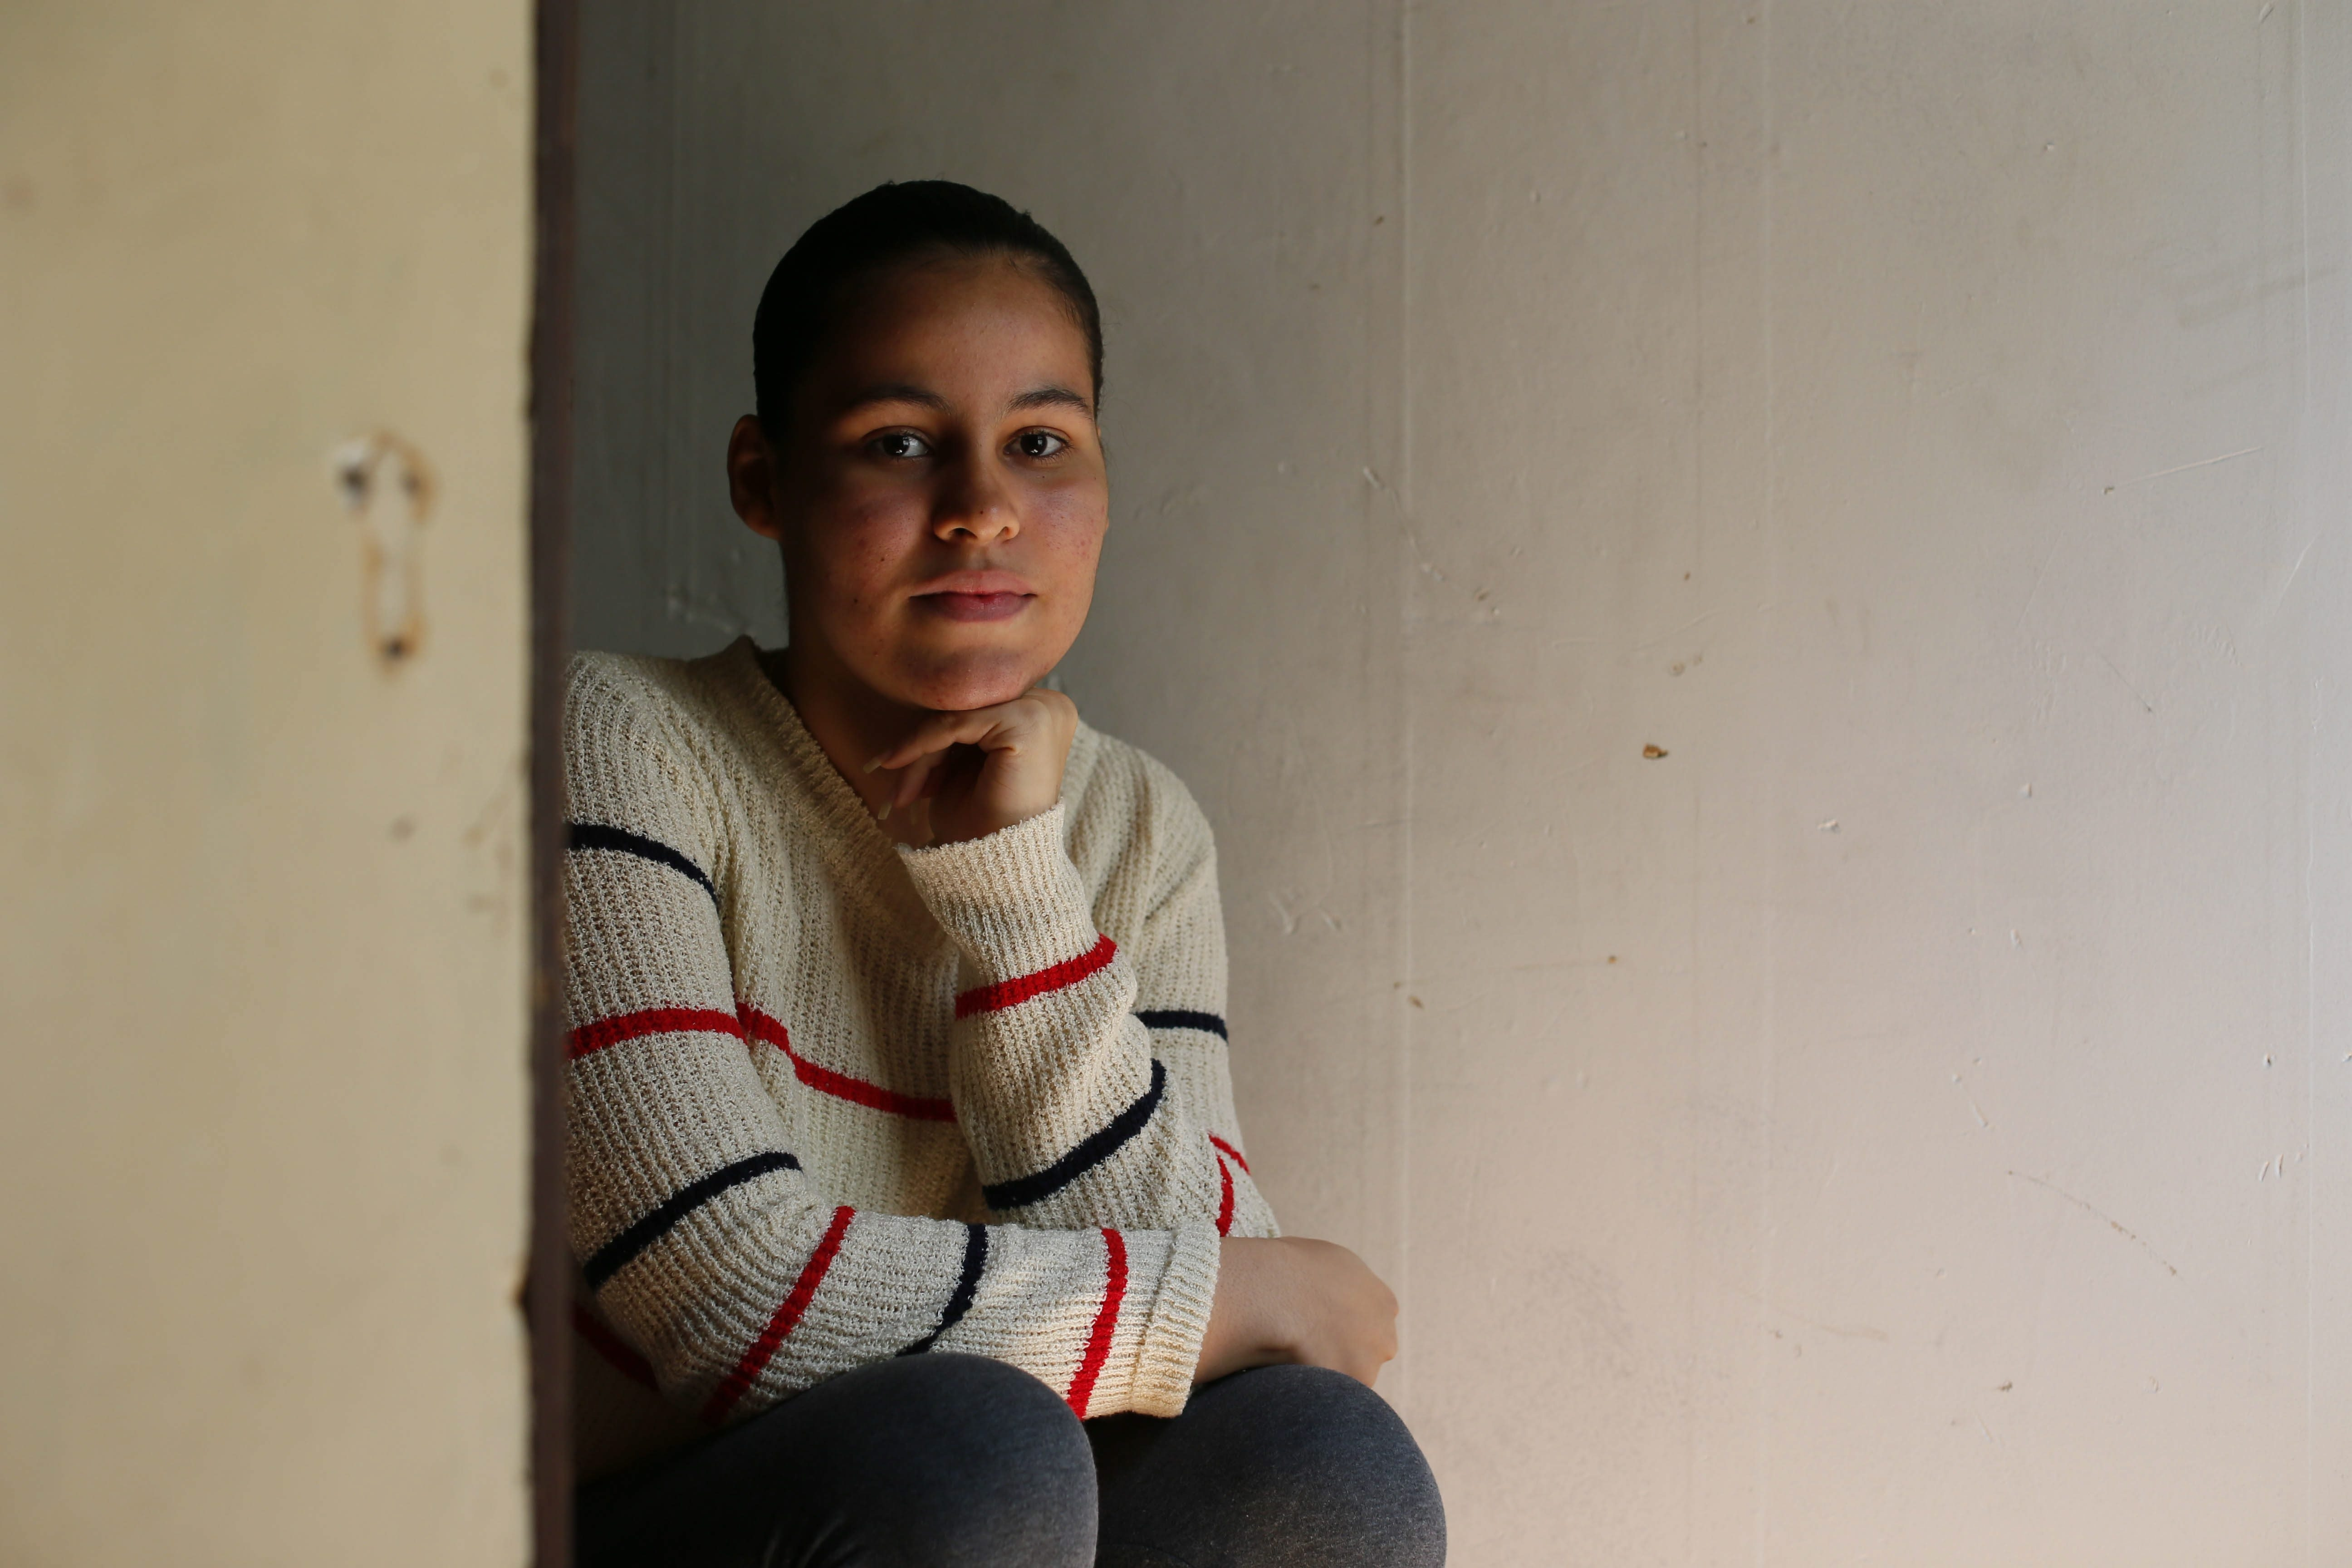 """""""Everybody spoke English, and I didn't know that much. It's hard because everyone looks at you like, 'What are you saying?' You feel rejected."""" Elisandra Mercado, Lafayette student who moved here from Puerto Rico when she was 11"""